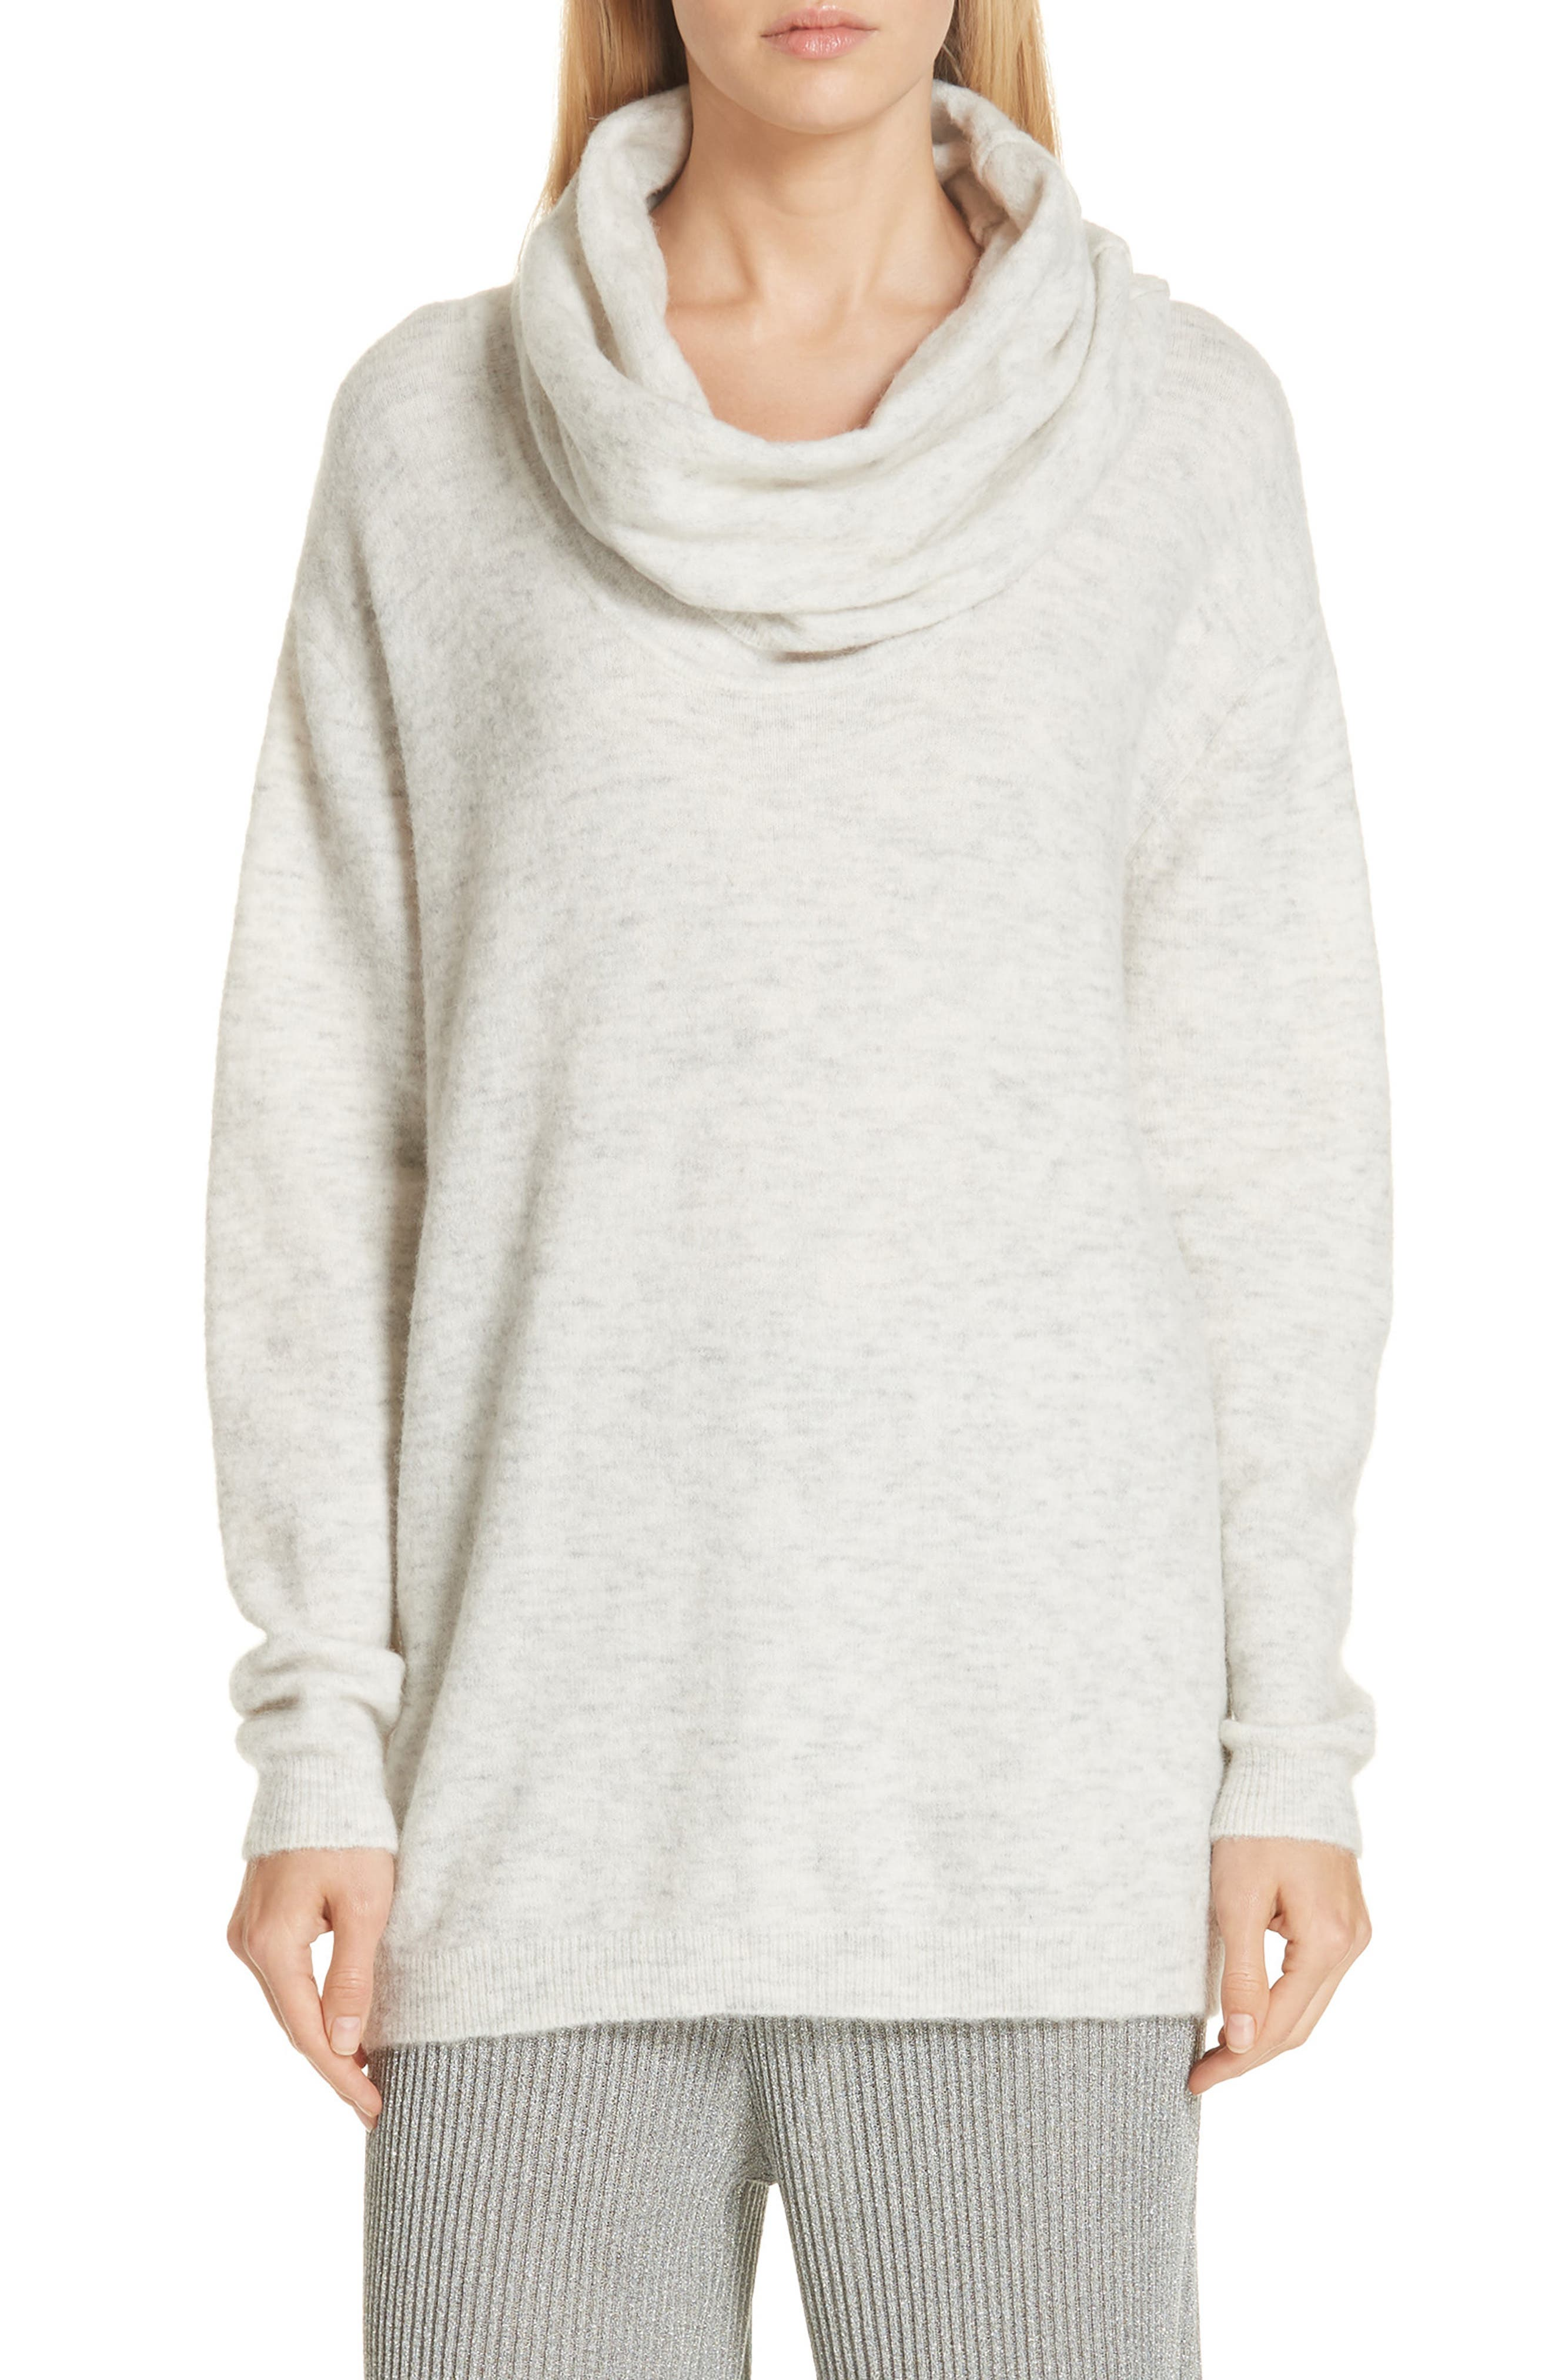 Mineral Cowl Neck Sweater,                             Main thumbnail 1, color,                             GREY